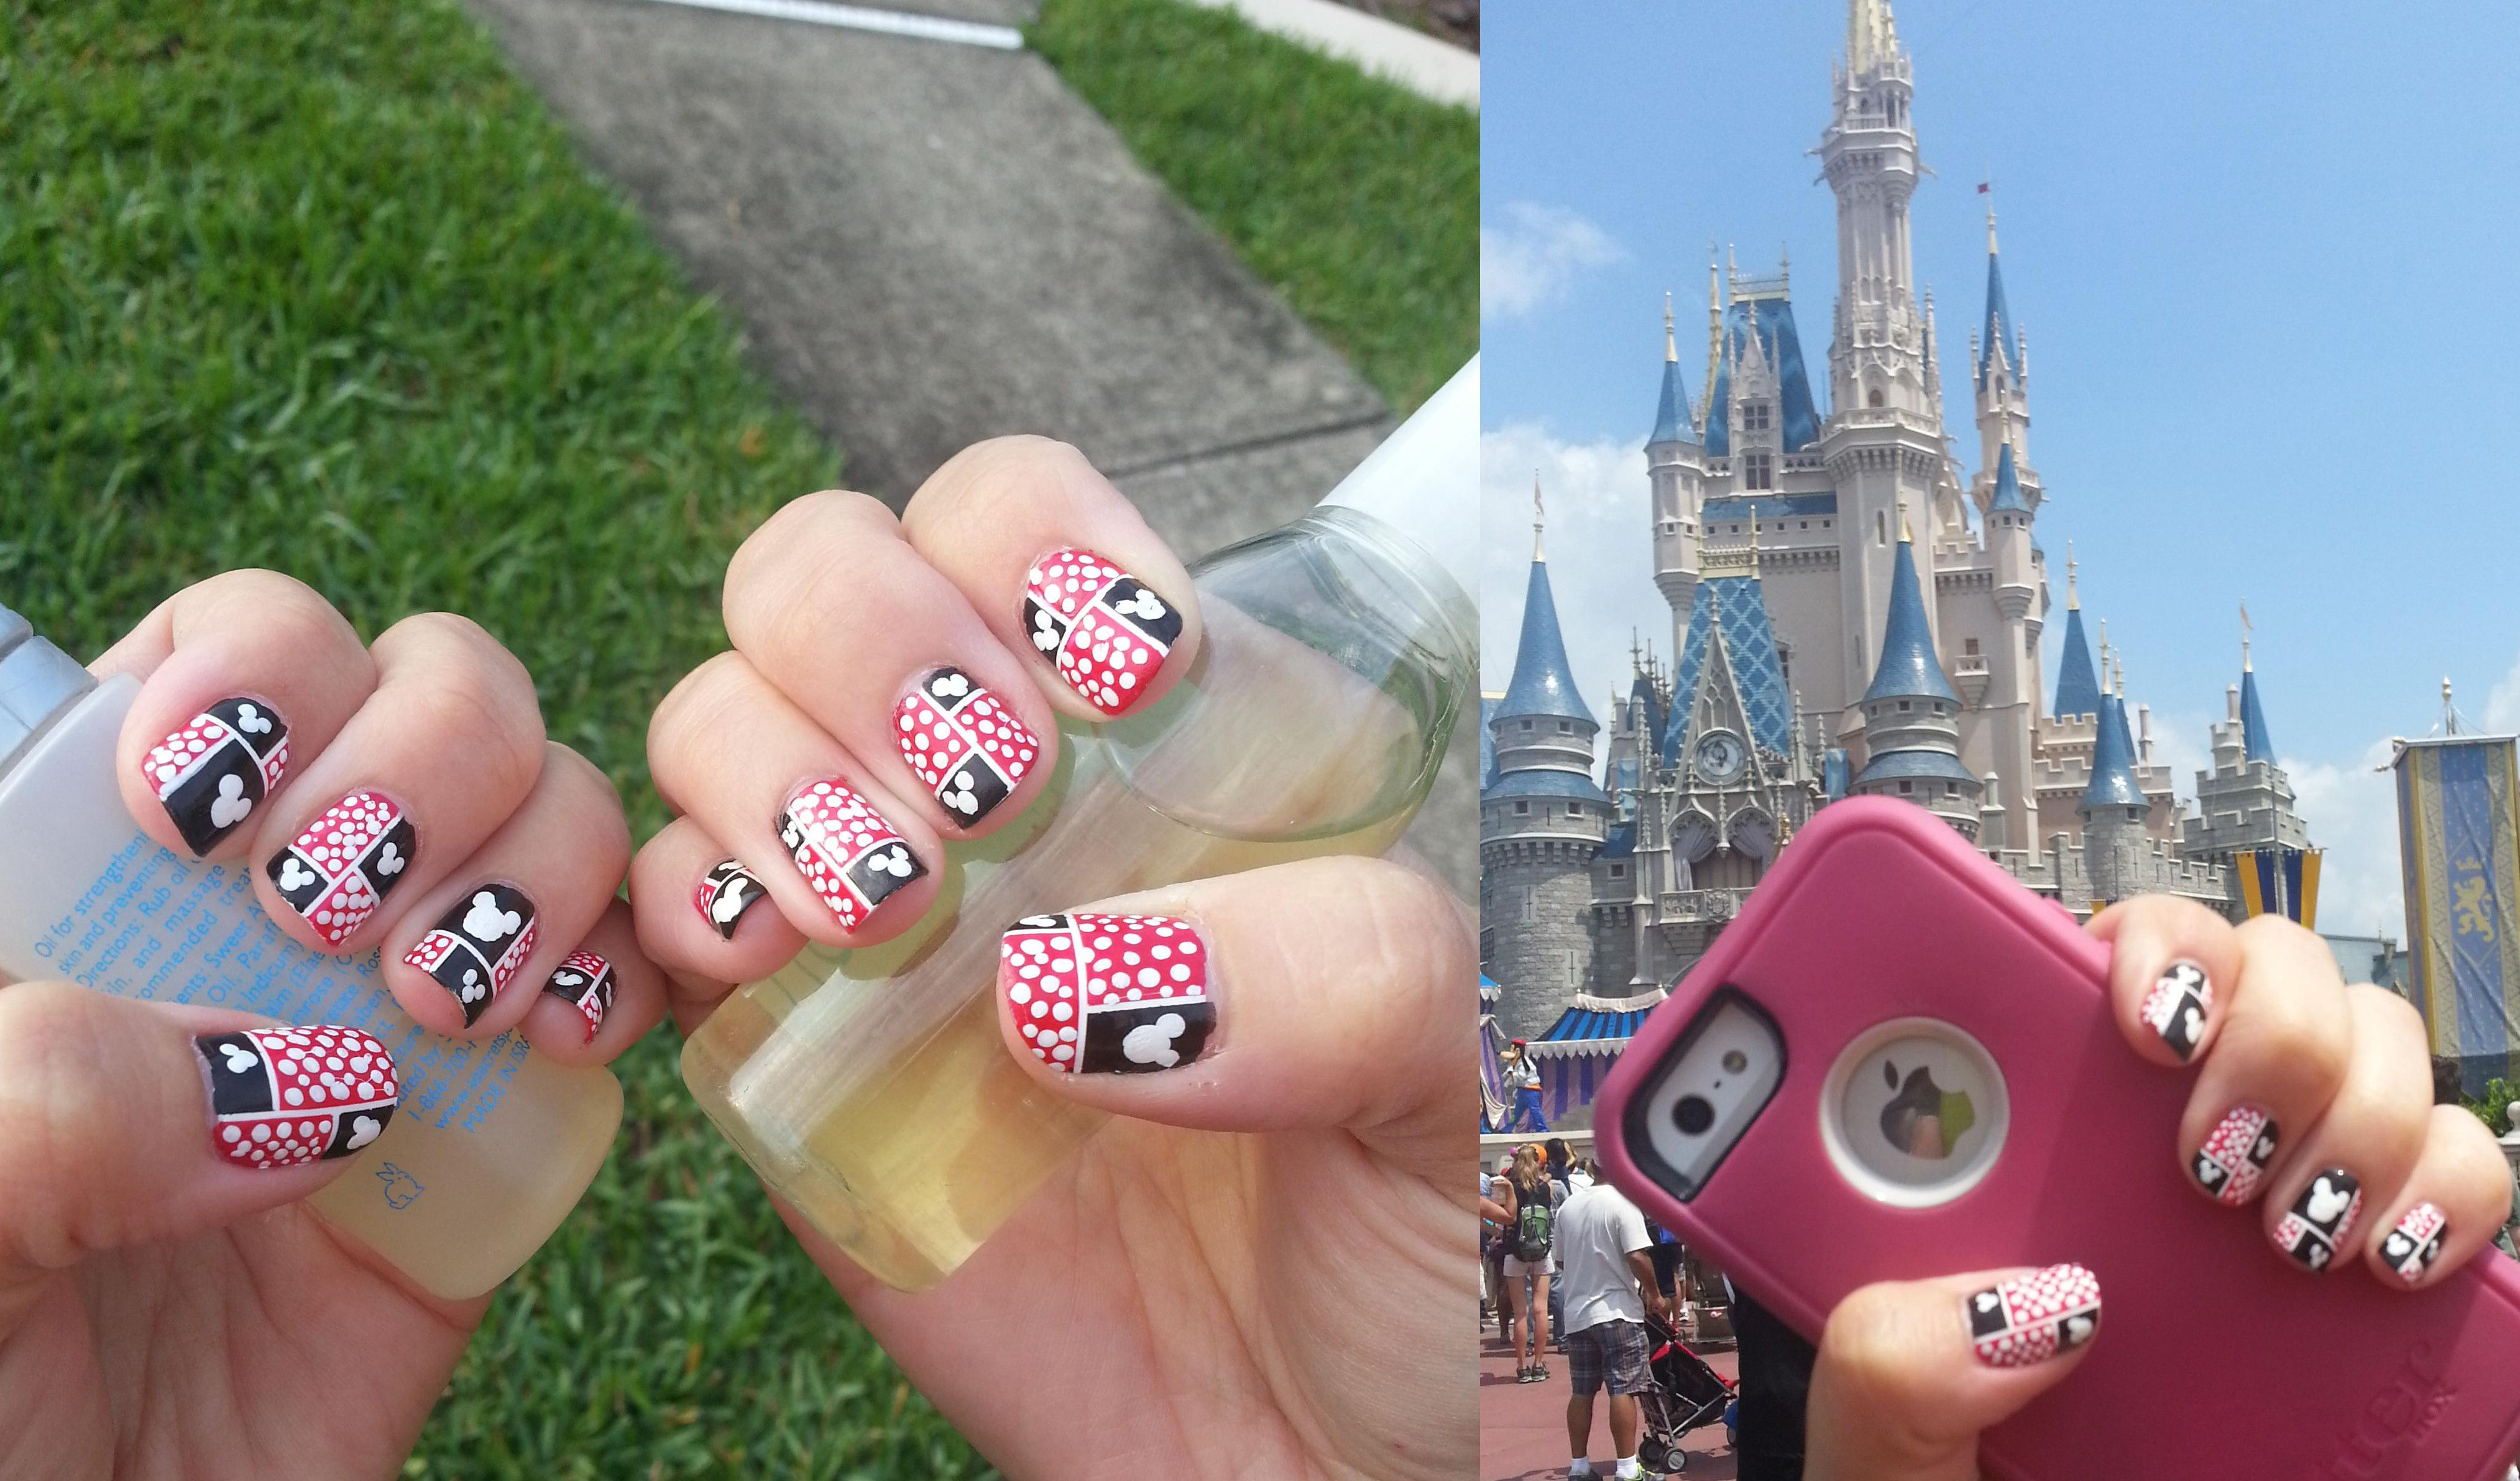 disney manicure nails! - Disney | Pinterest